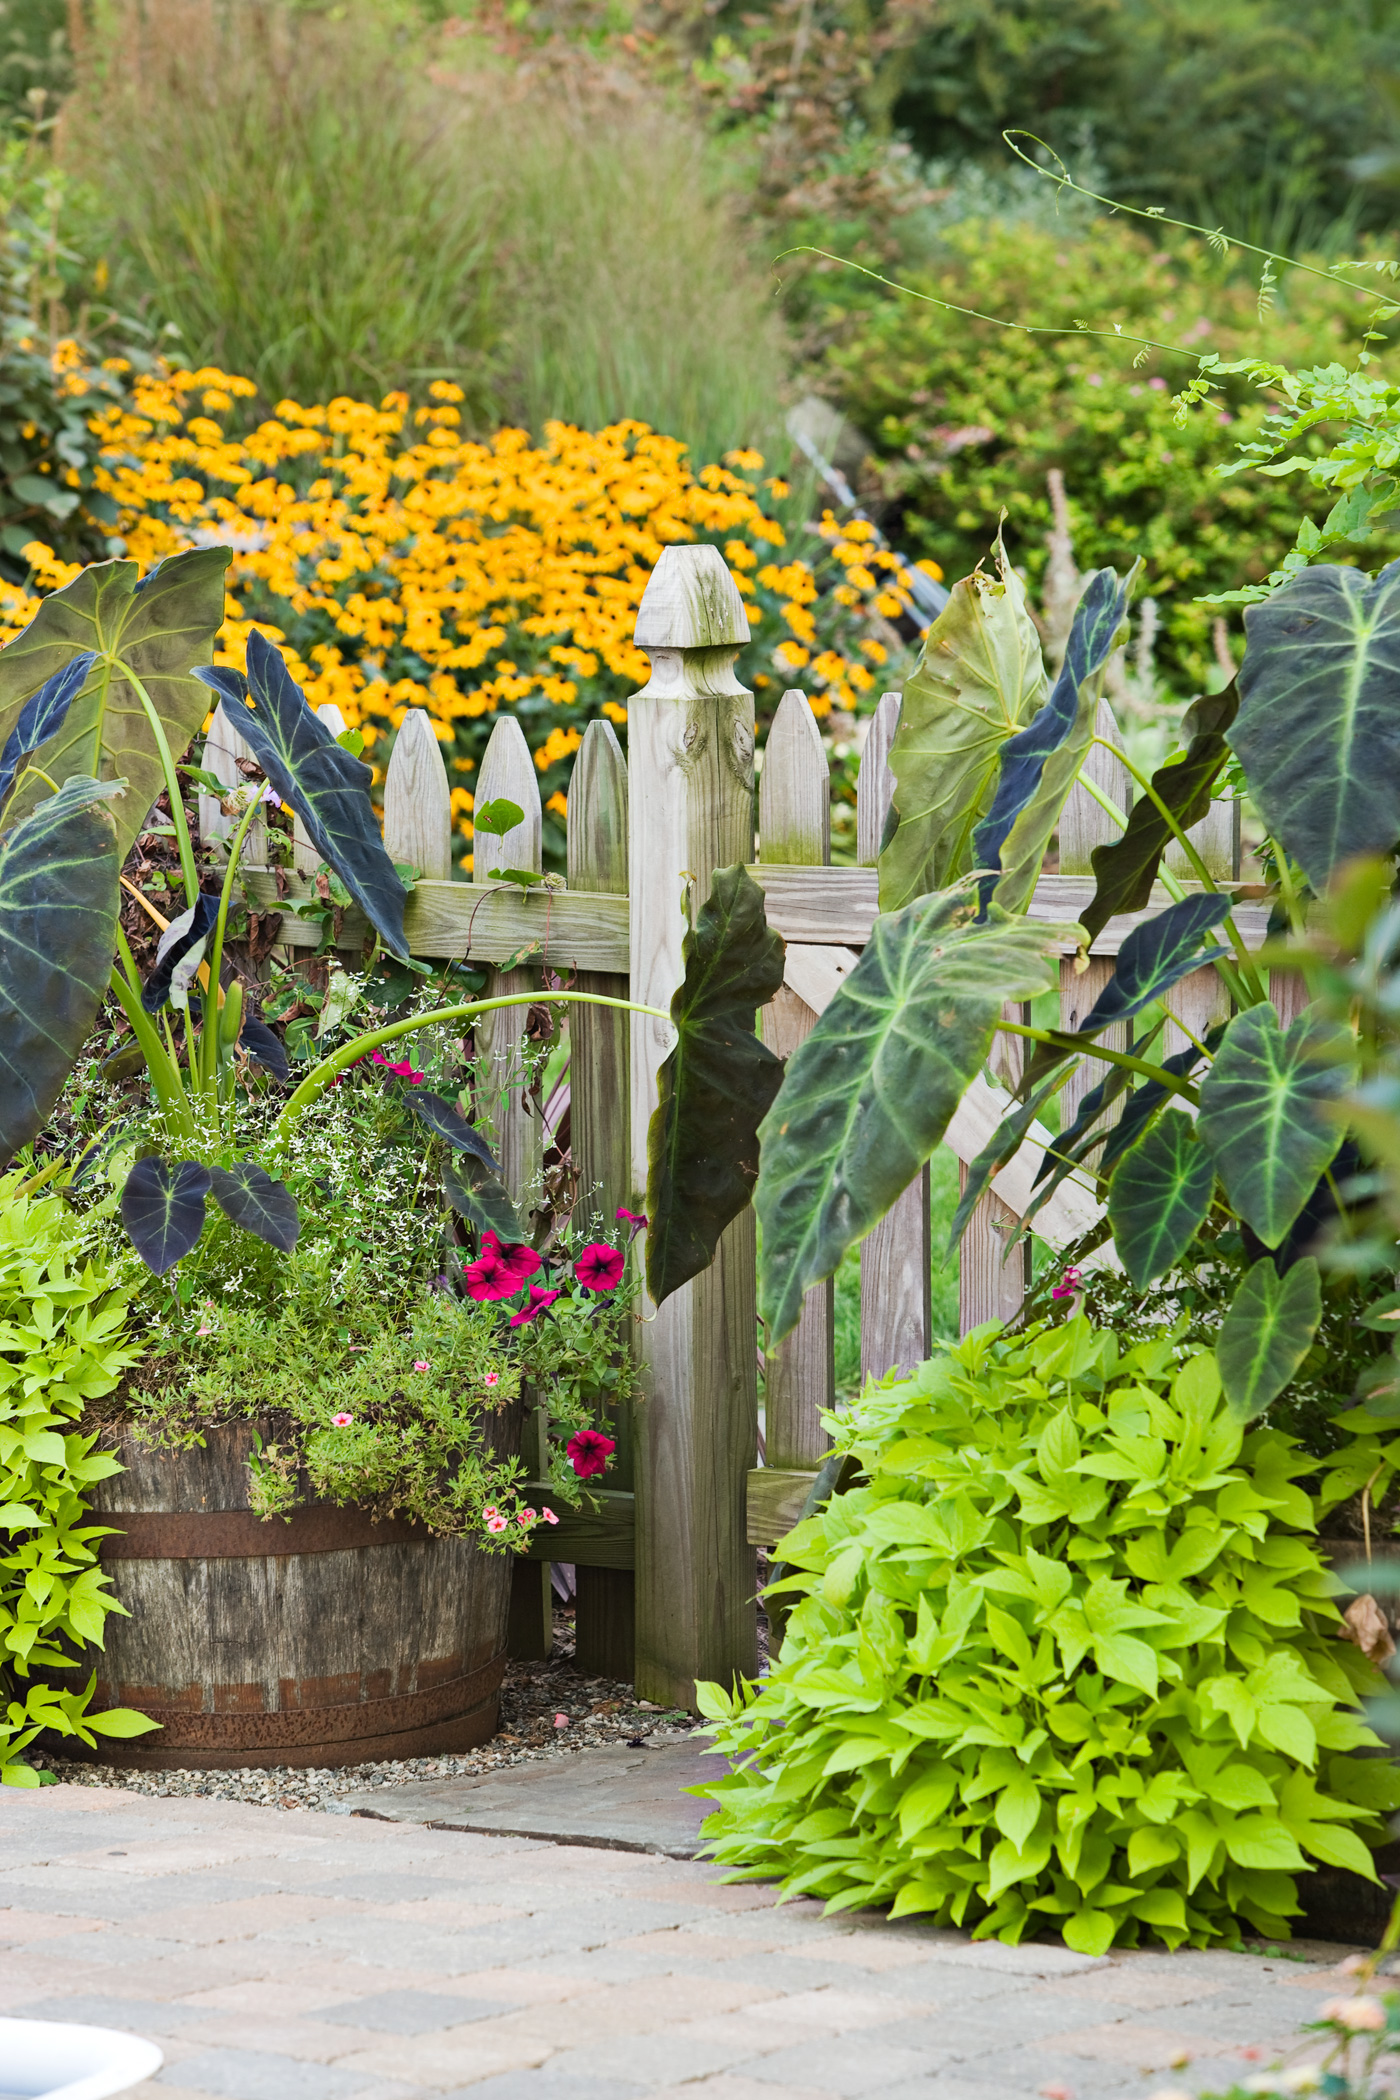 Garden Ideas Better Homes And Gardens container garden ideas better homes and gardens best garden ideas